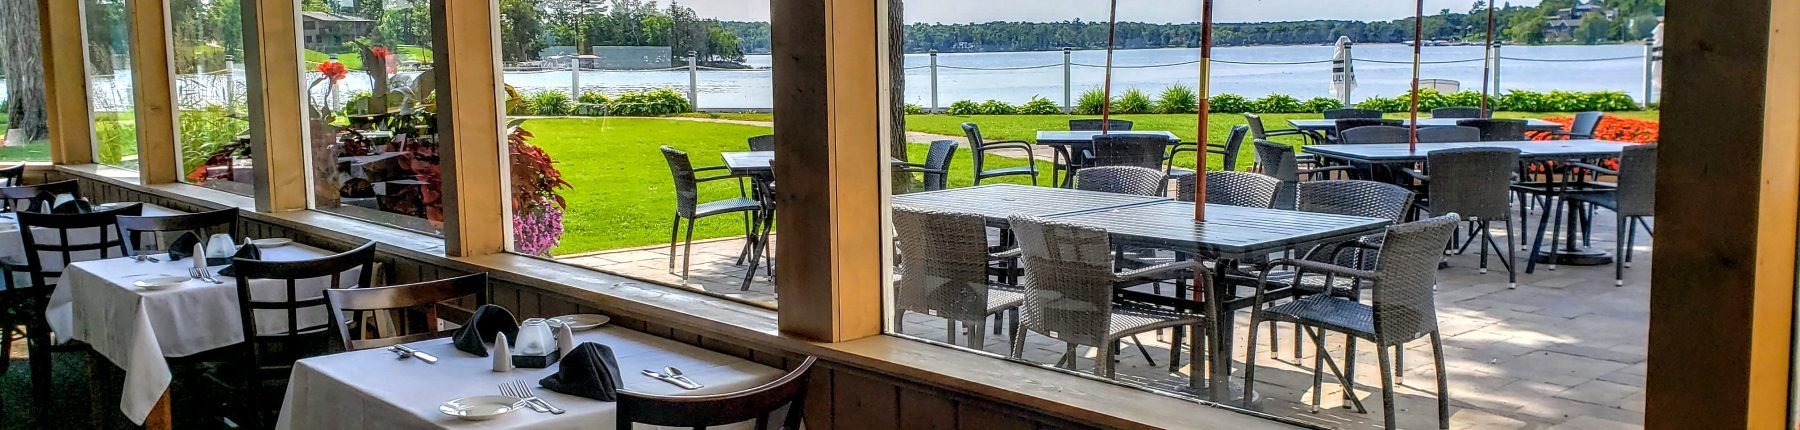 View of Lake From Restaurant